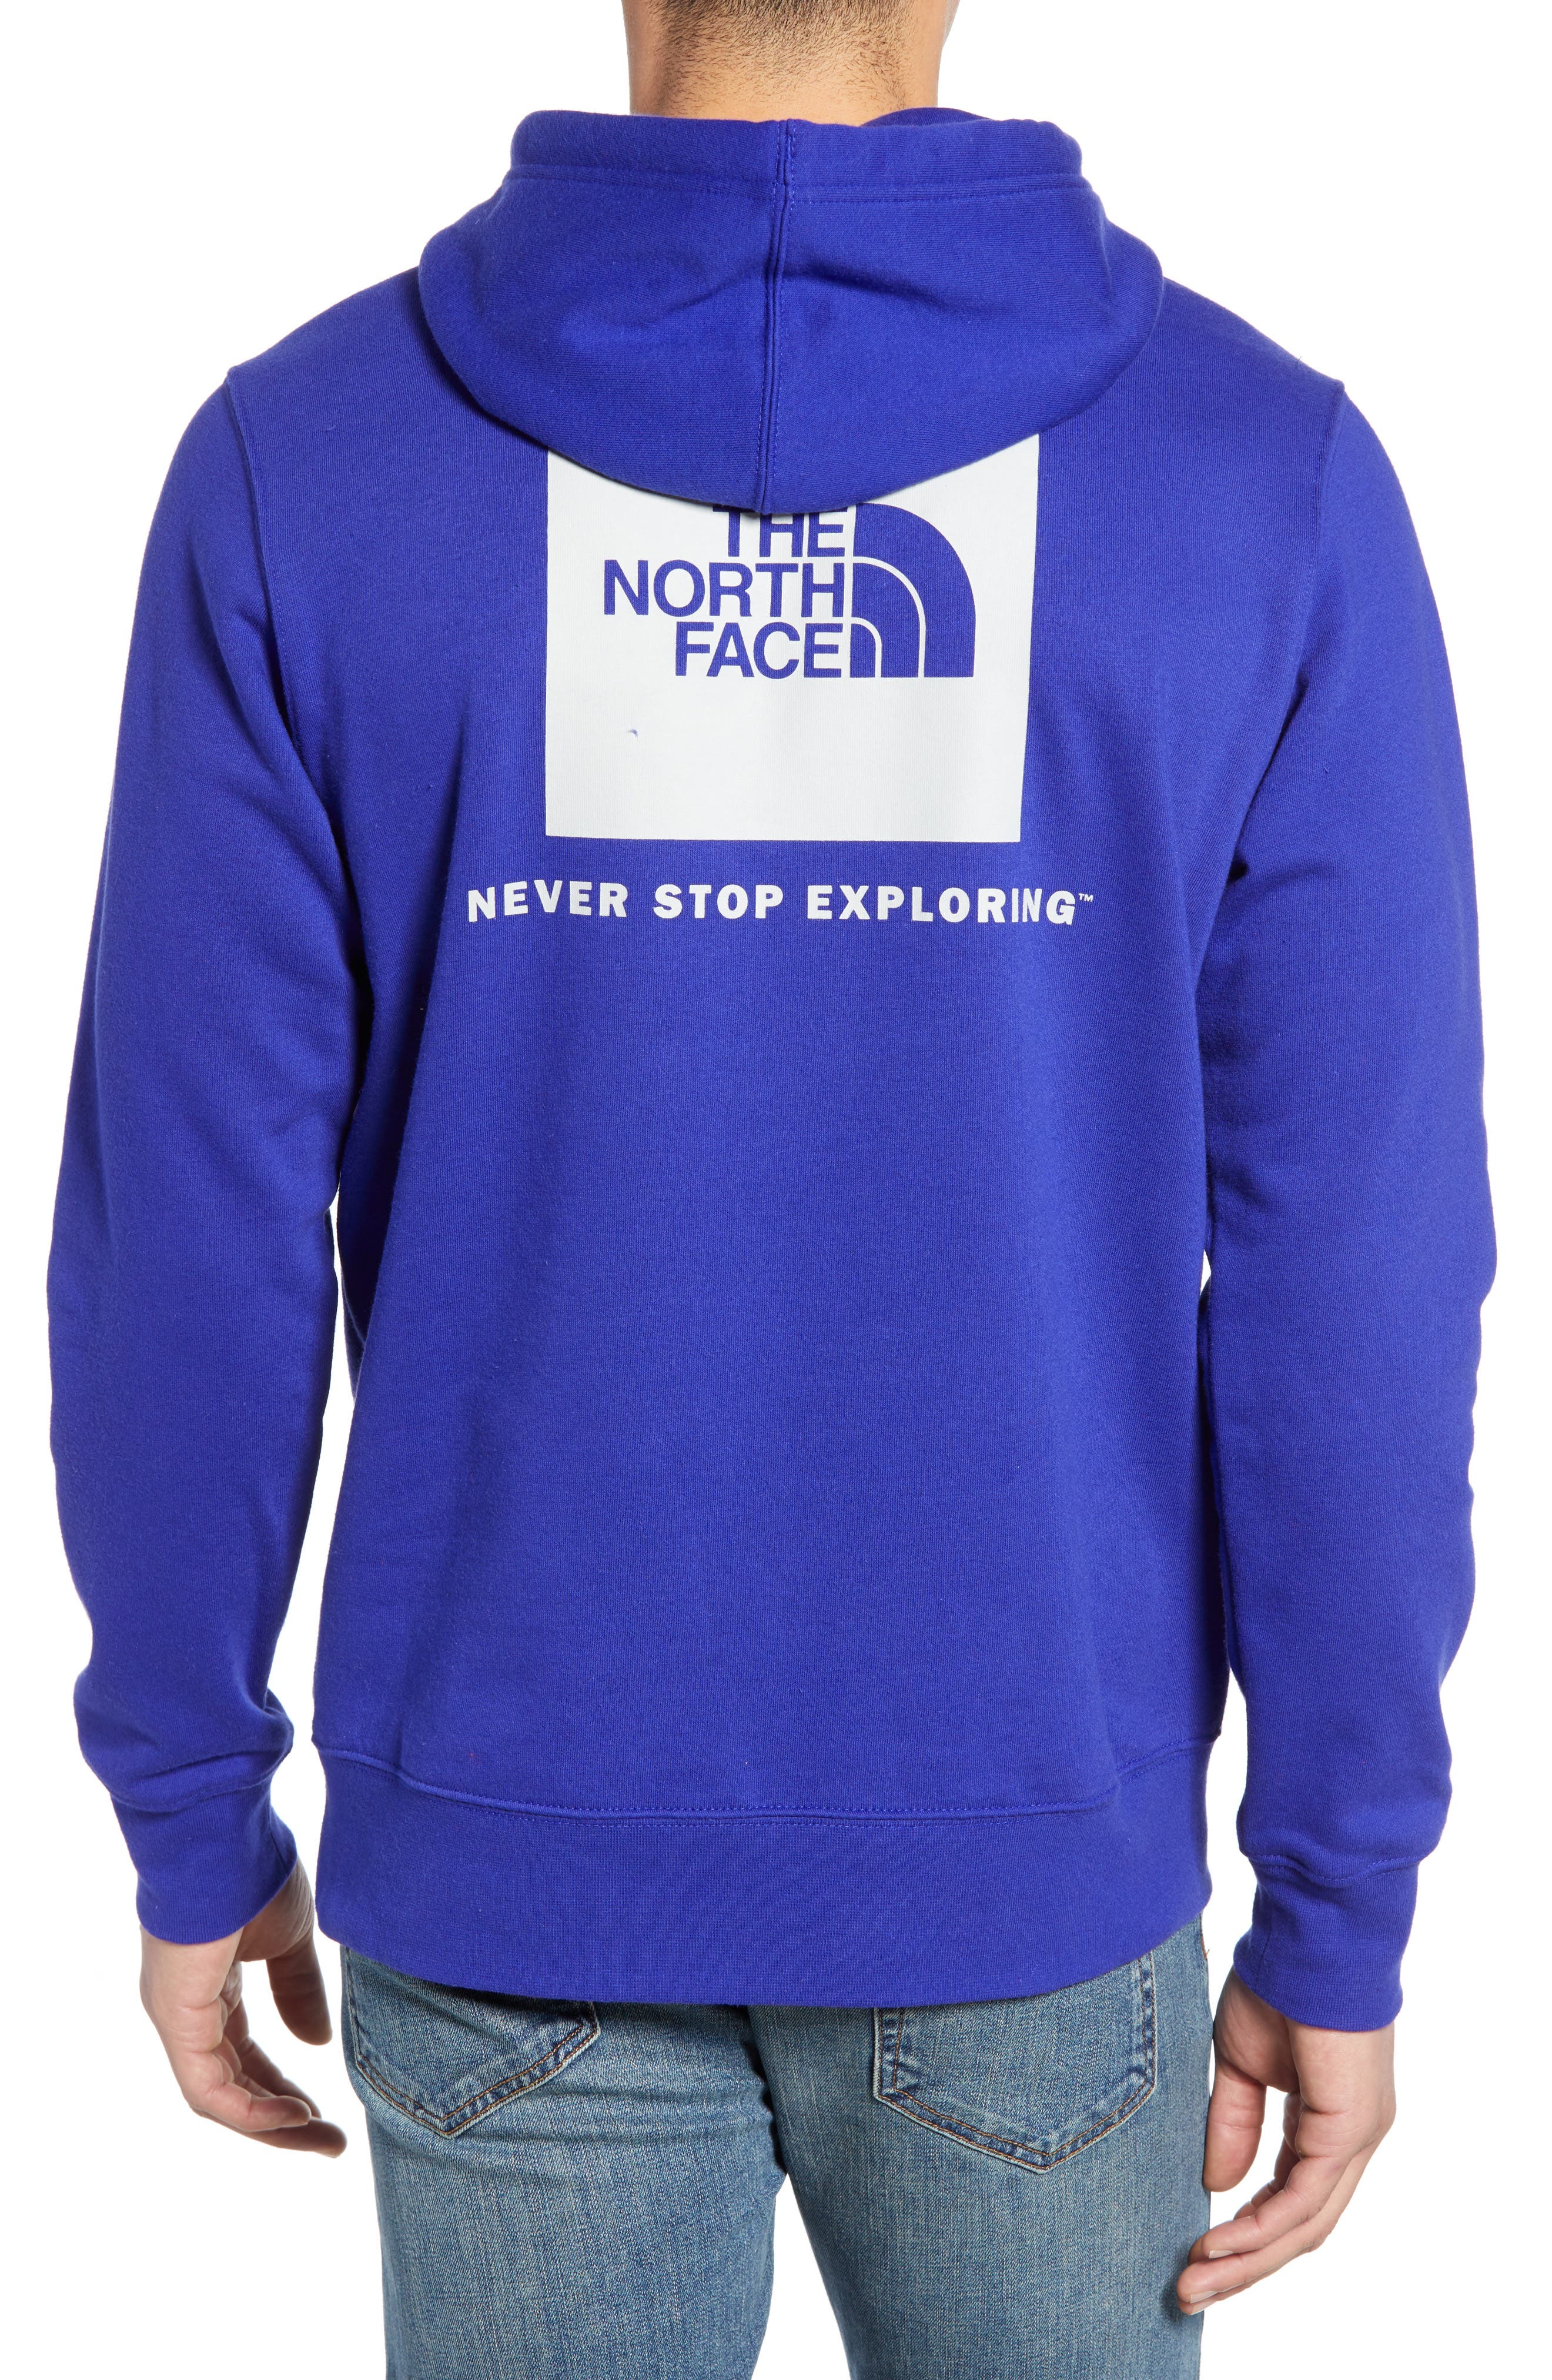 68ed2a43d4f0 Sweatshirts   Hoodies The North Face